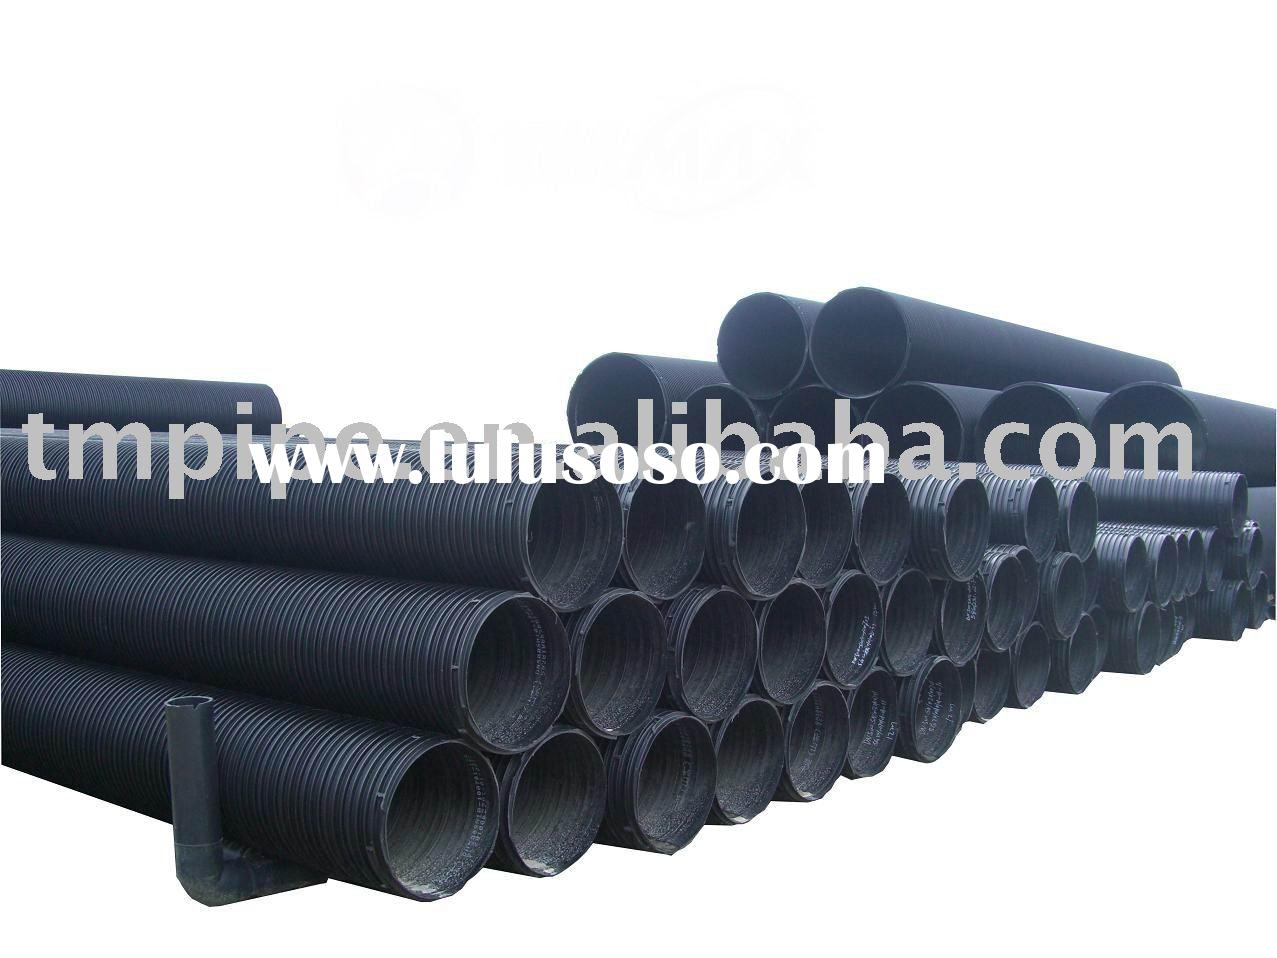 Large Diameter Steel Reinforced Corrugated HDPE Drainage Pipe